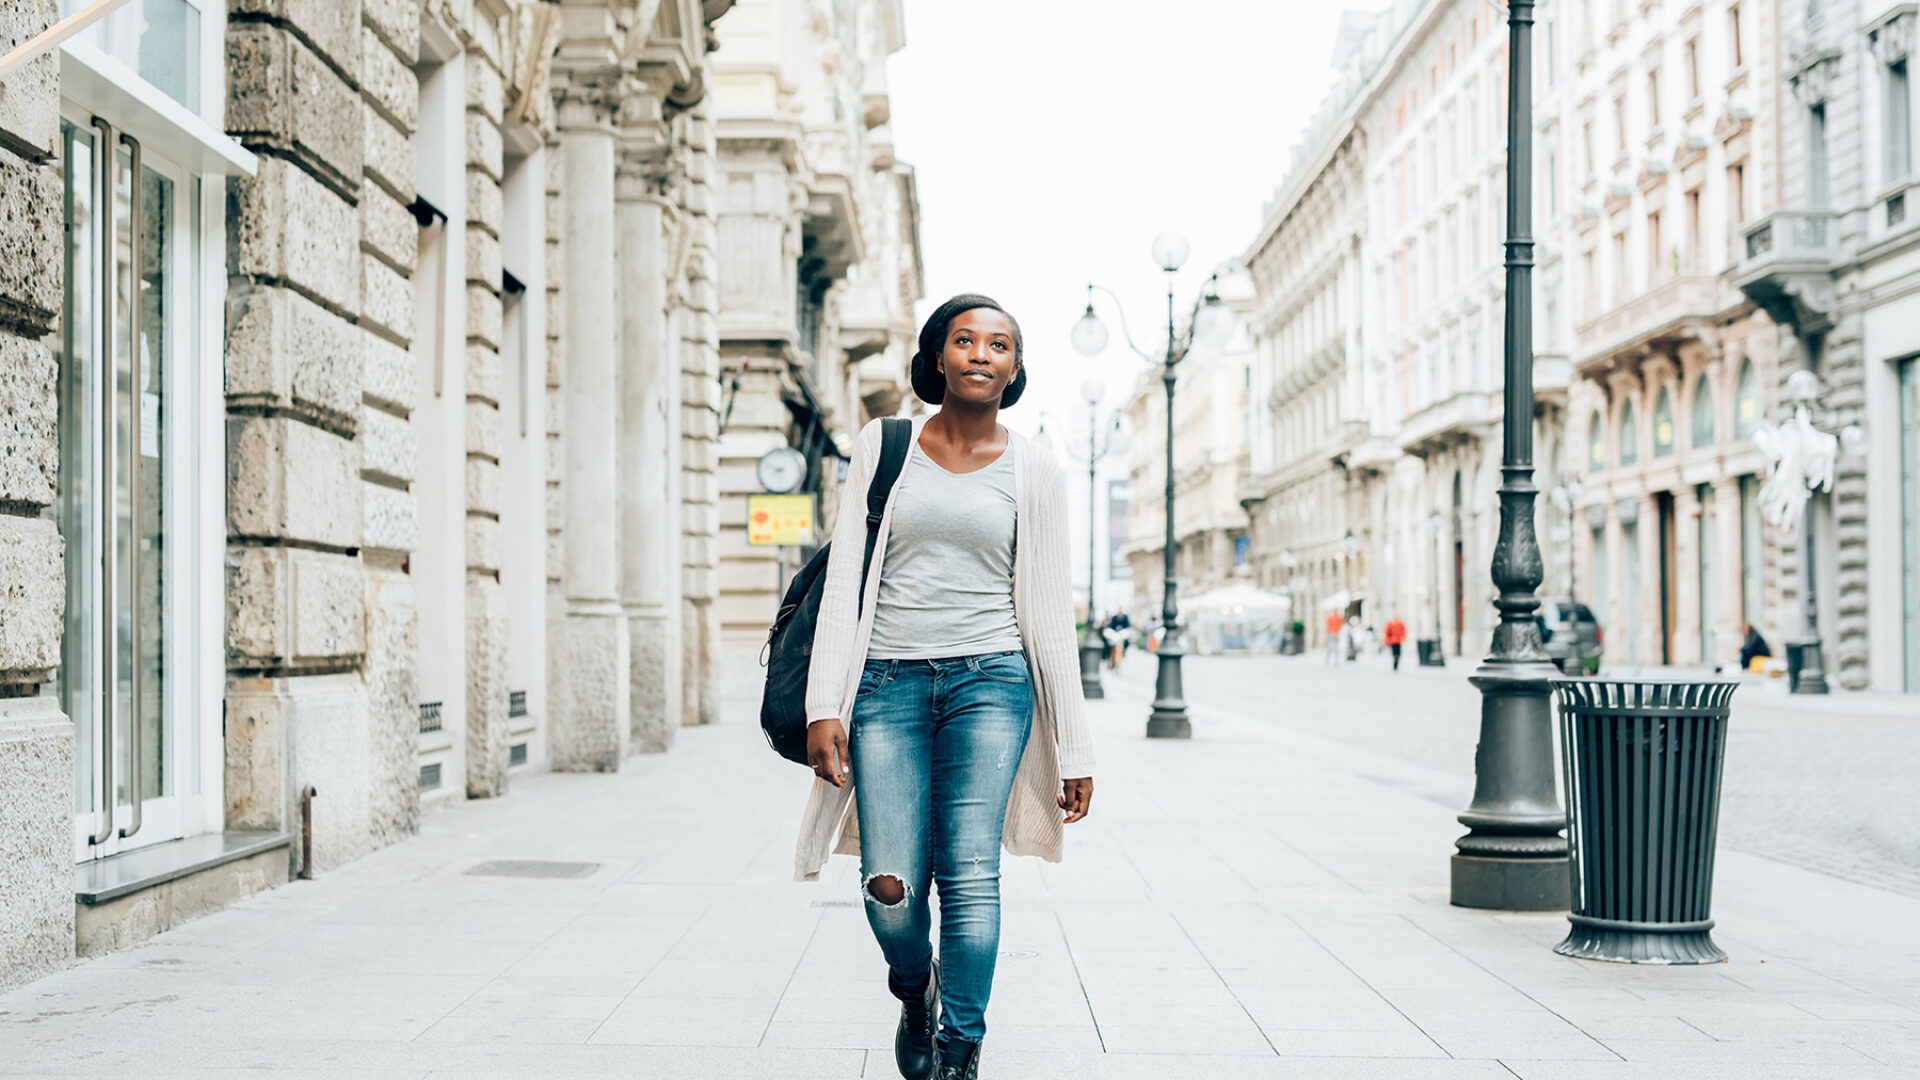 The realities of being a black woman abroad